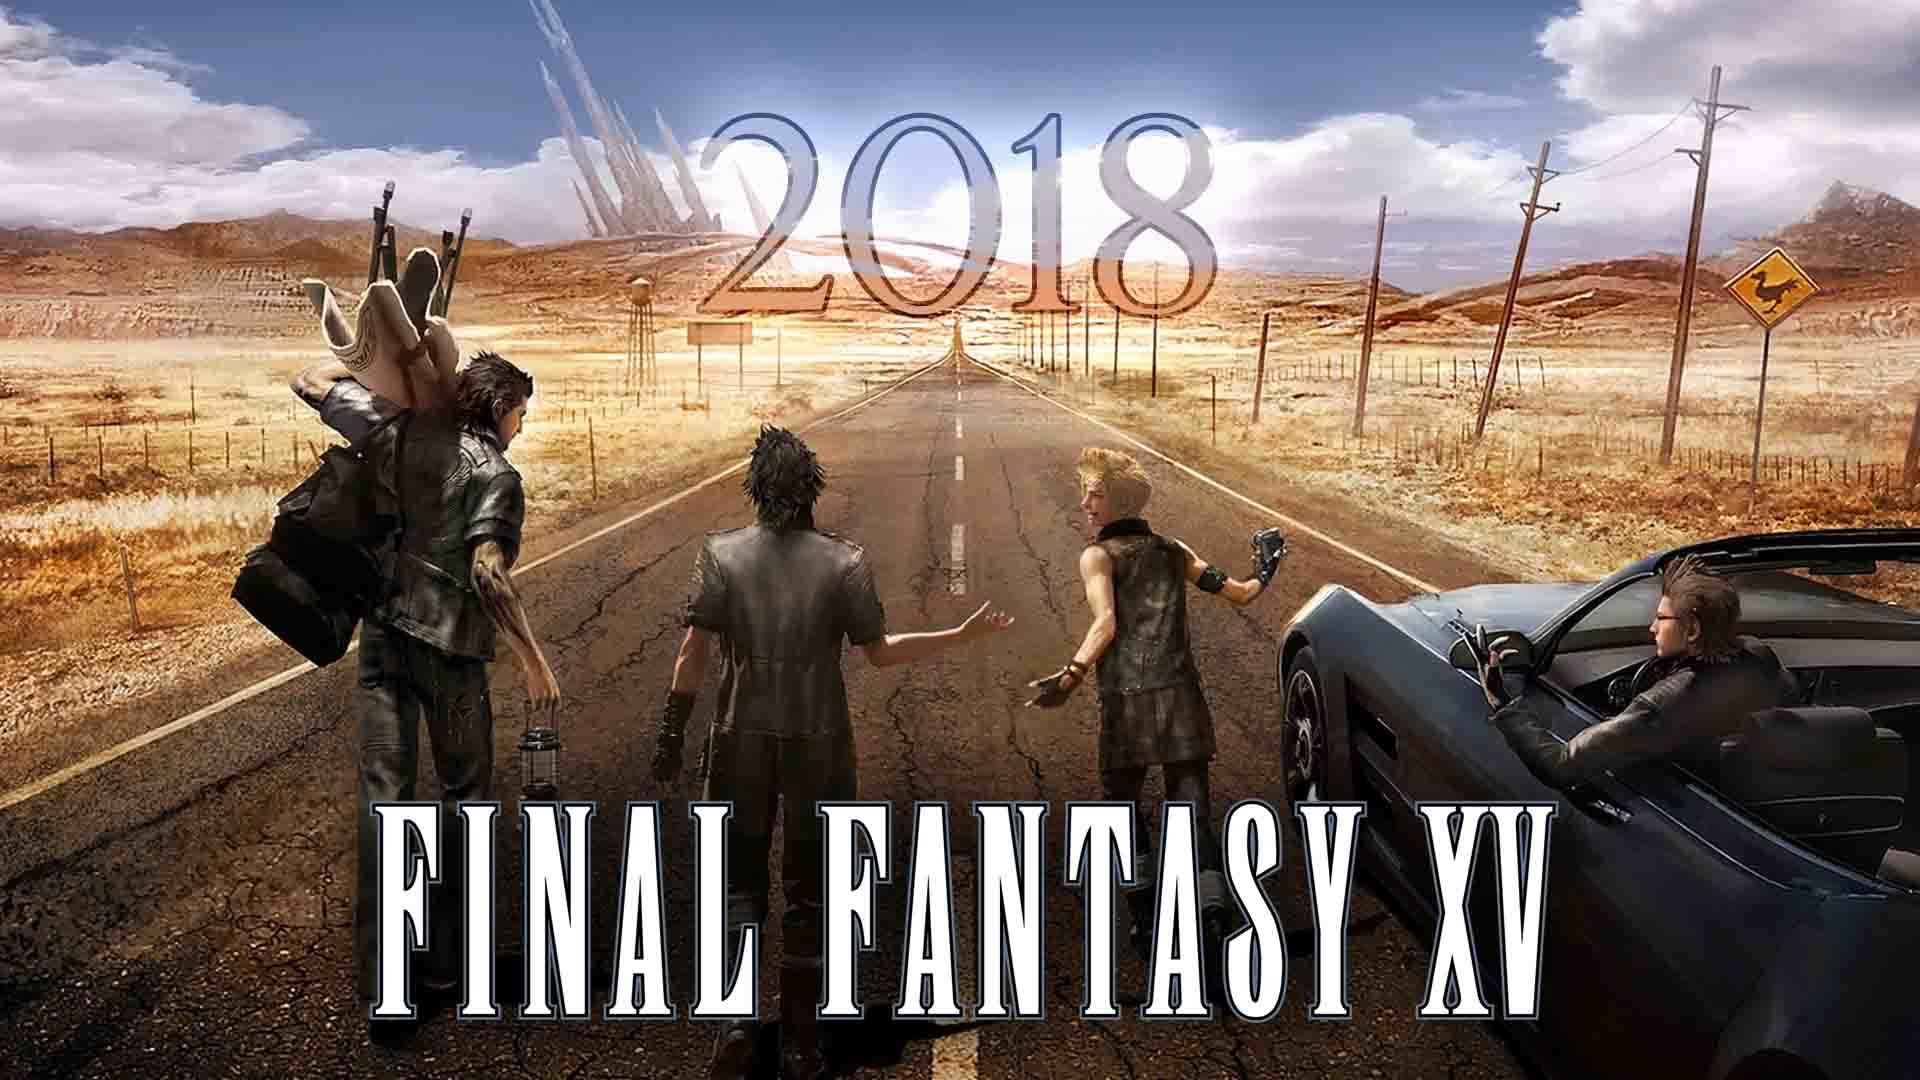 final-fantasy-xv-continue-content-development-2018-playstation-ps4-xbox-xbox-one-square-enix-jrpg-ignis